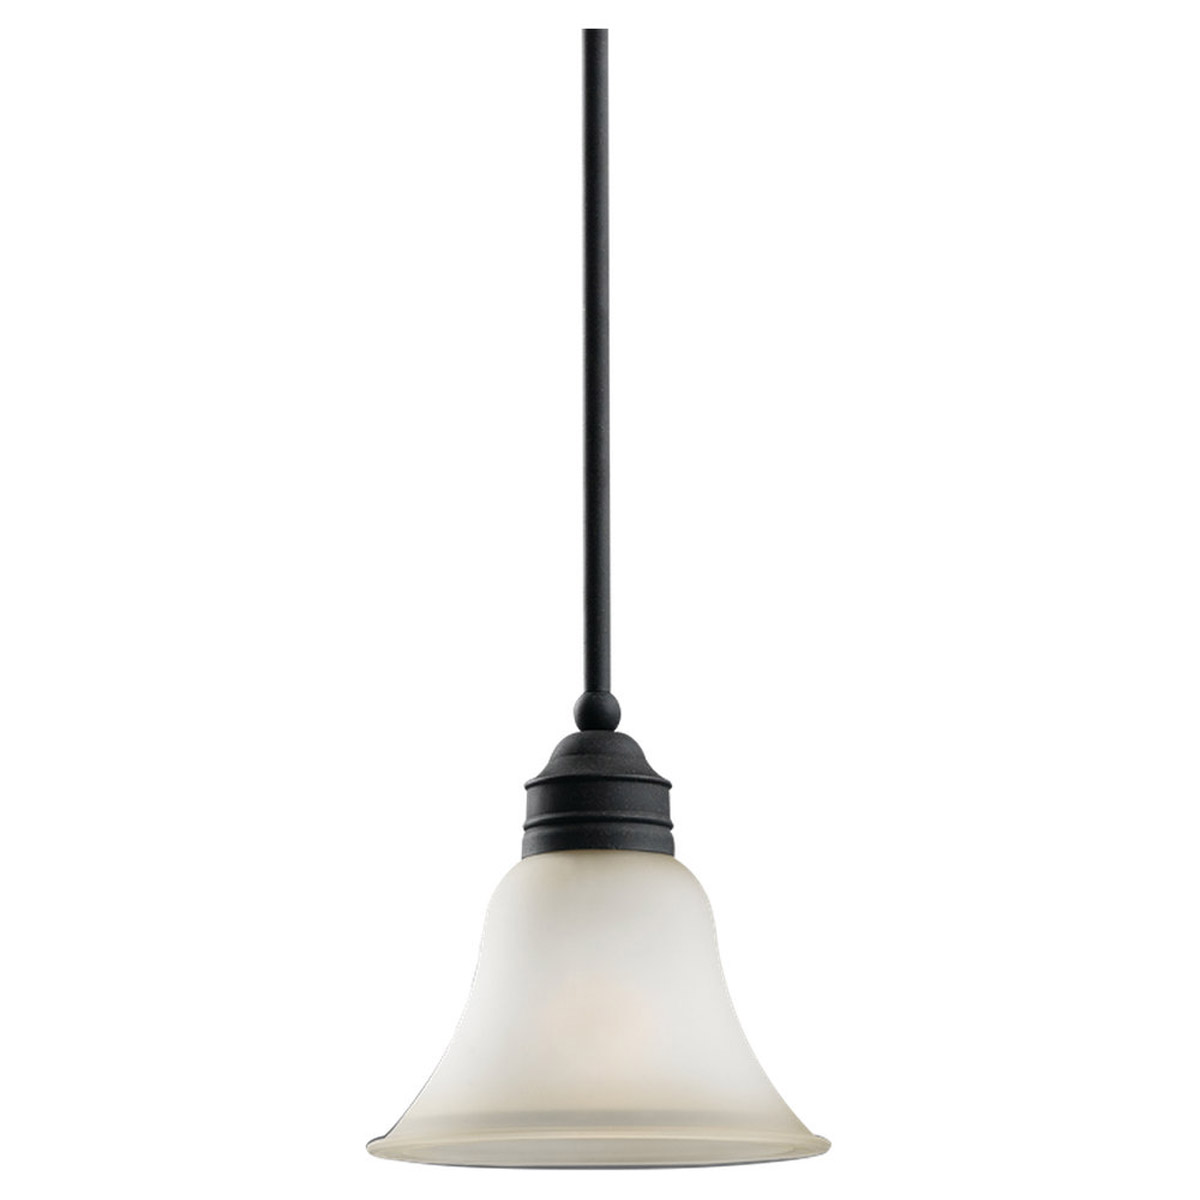 Sea Gull Lighting Gladstone 1 Light Pendant in Forged Iron 61850-185 photo